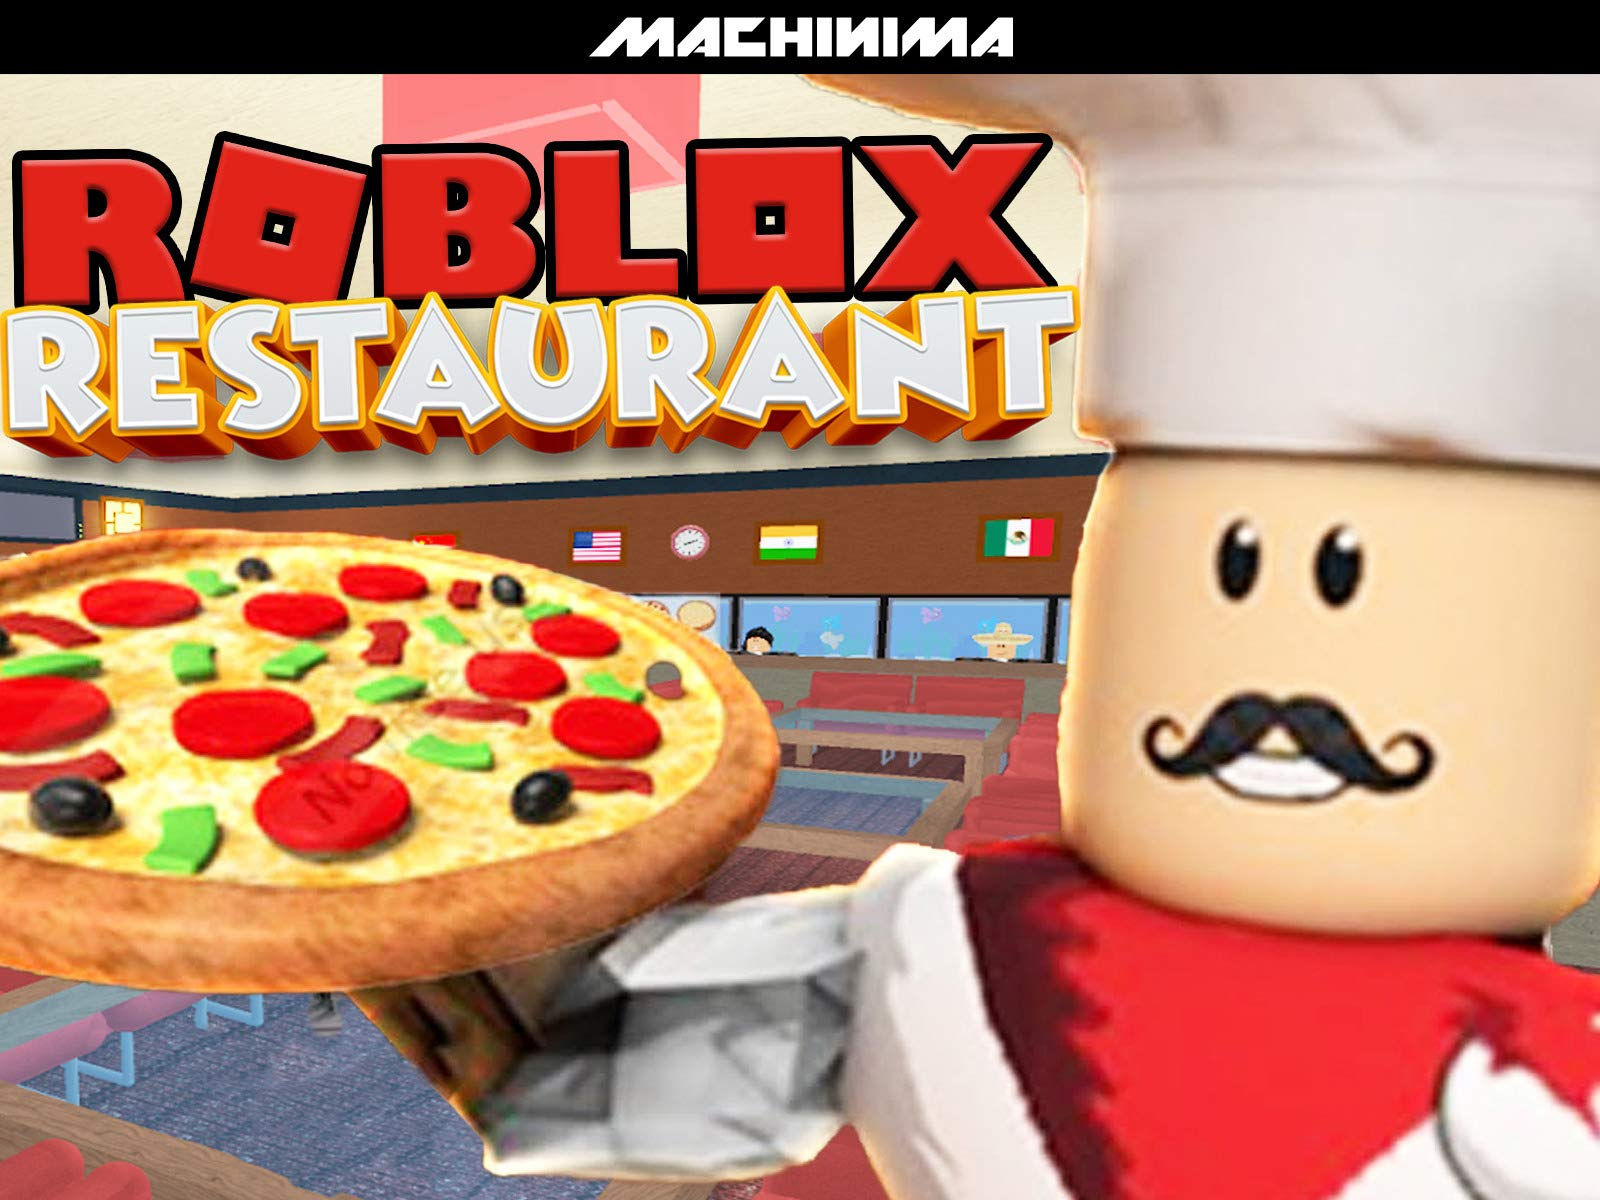 Amazon com: Watch Clip: Roblox Restaurant | Prime Video